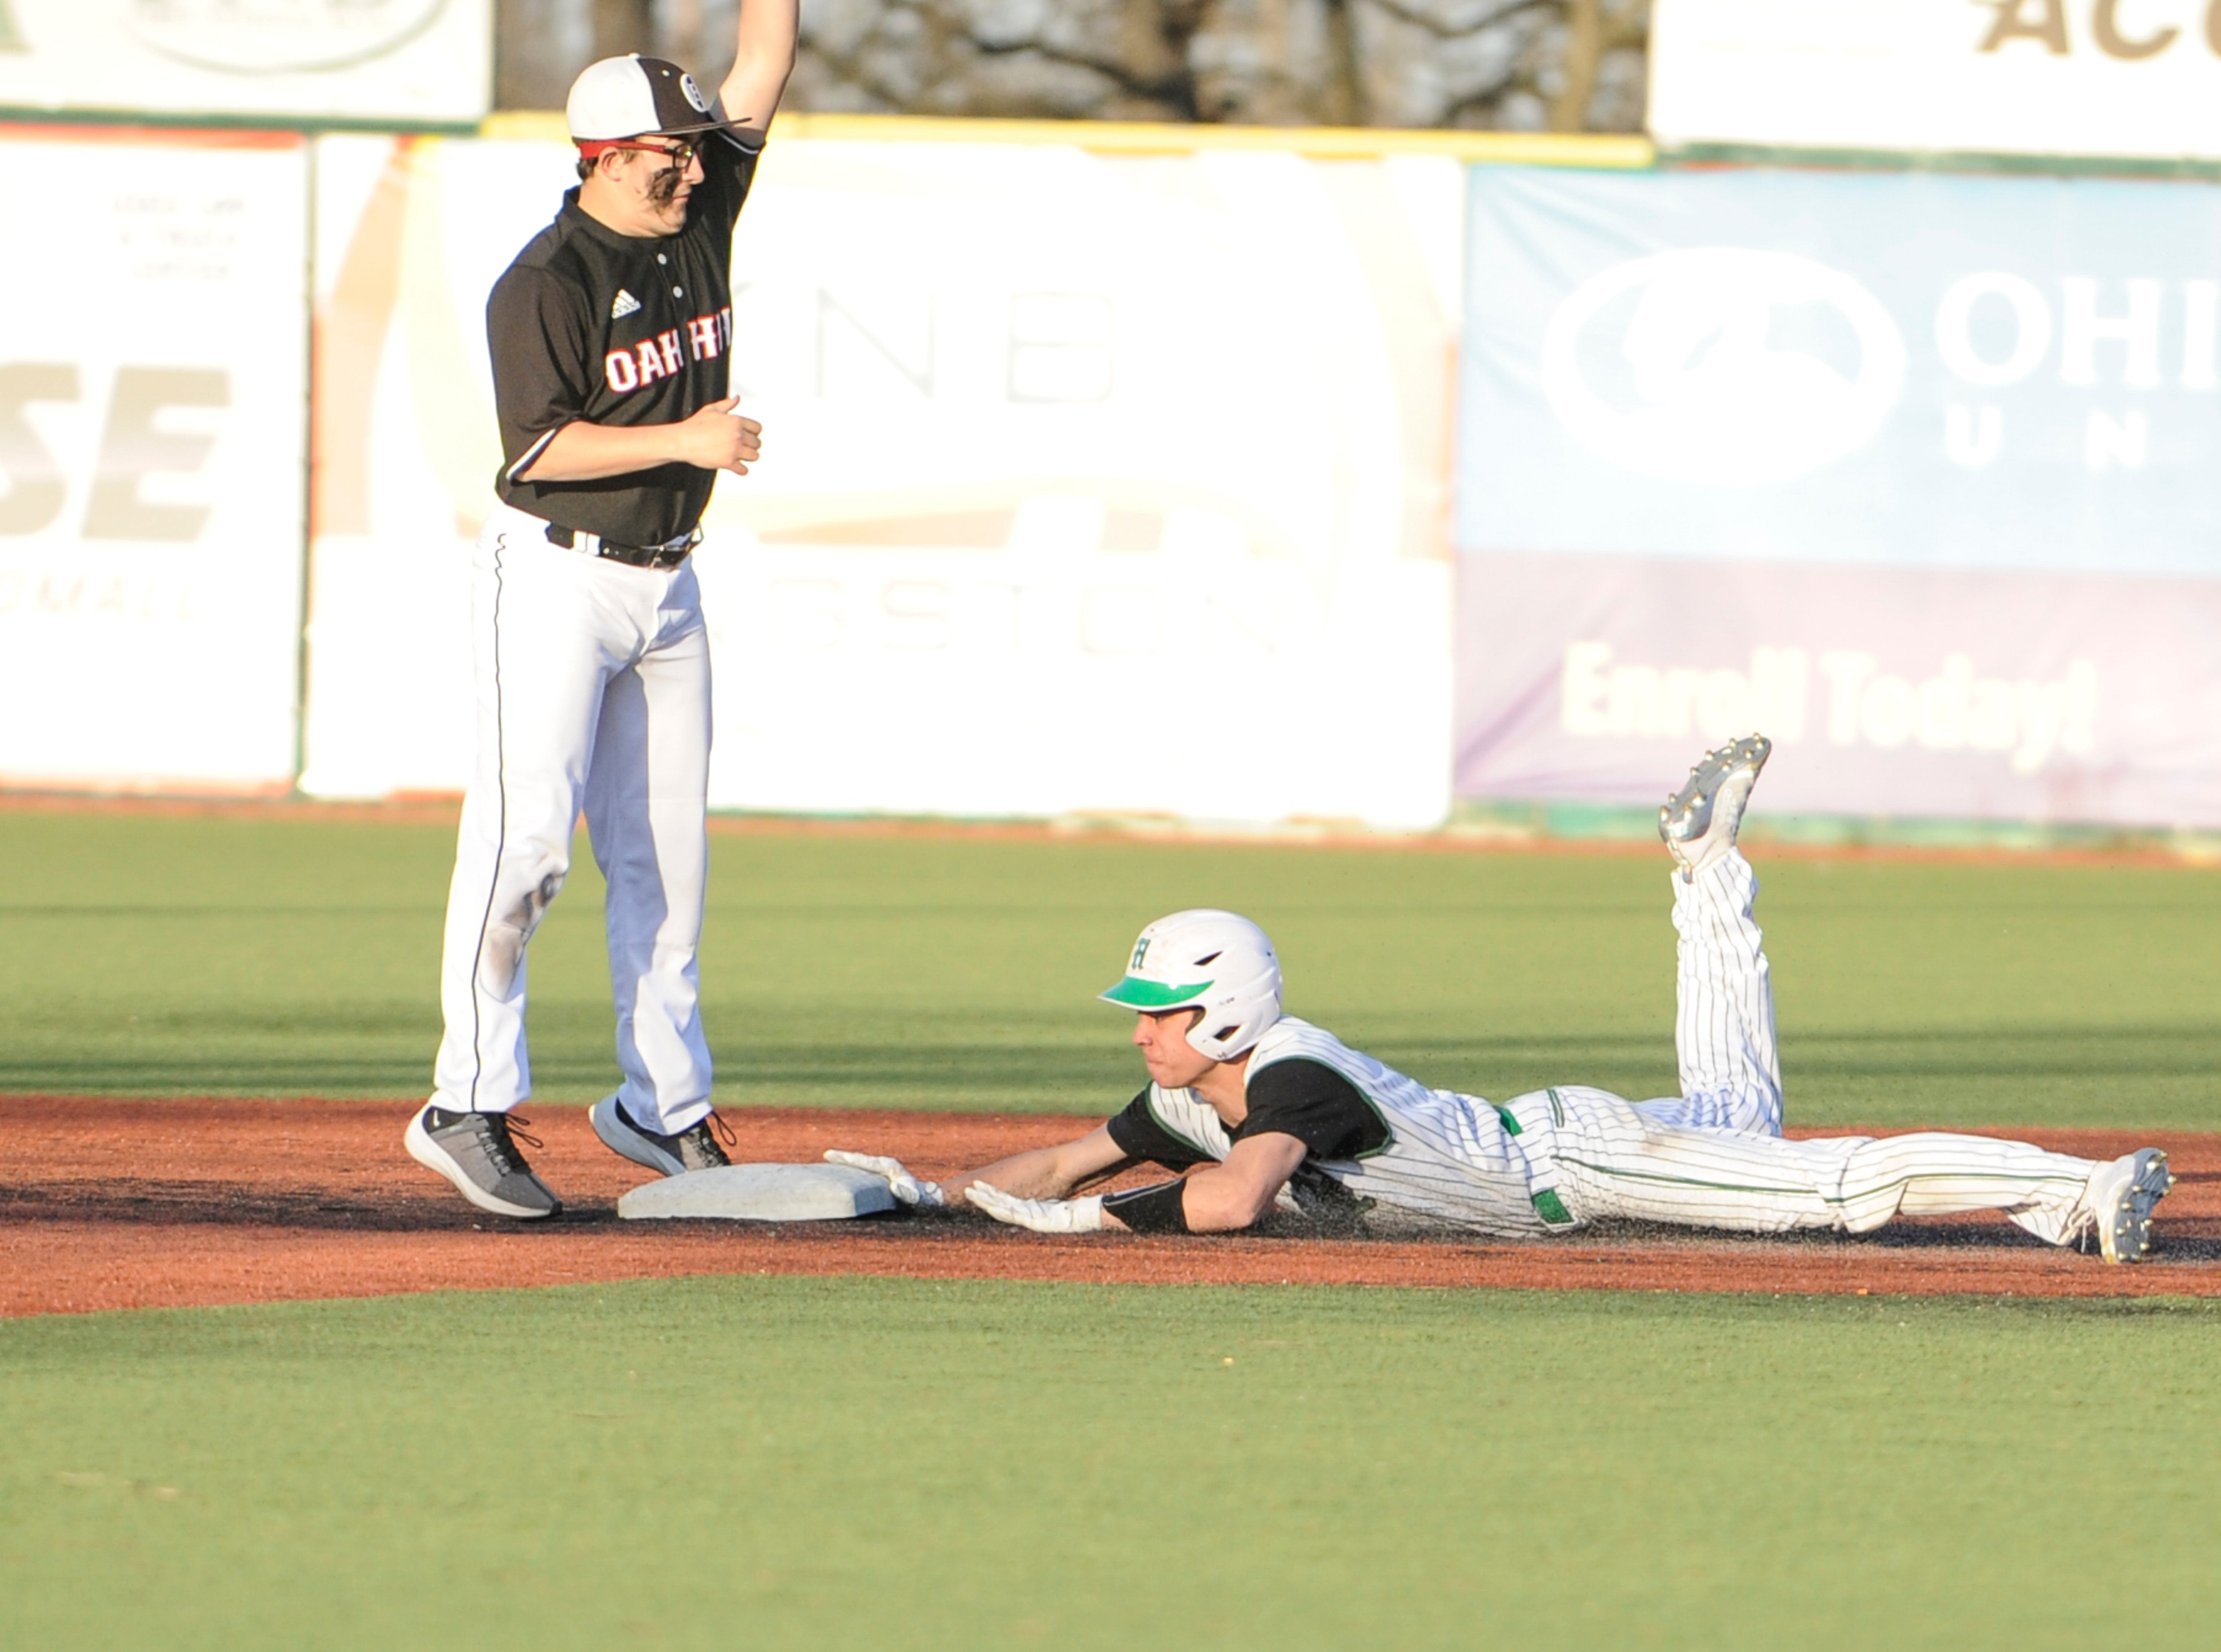 Huntington fell to Oak Hill 11-7 Tuesday night at the VA Memorial Stadium in Chillicothe, Ohio.